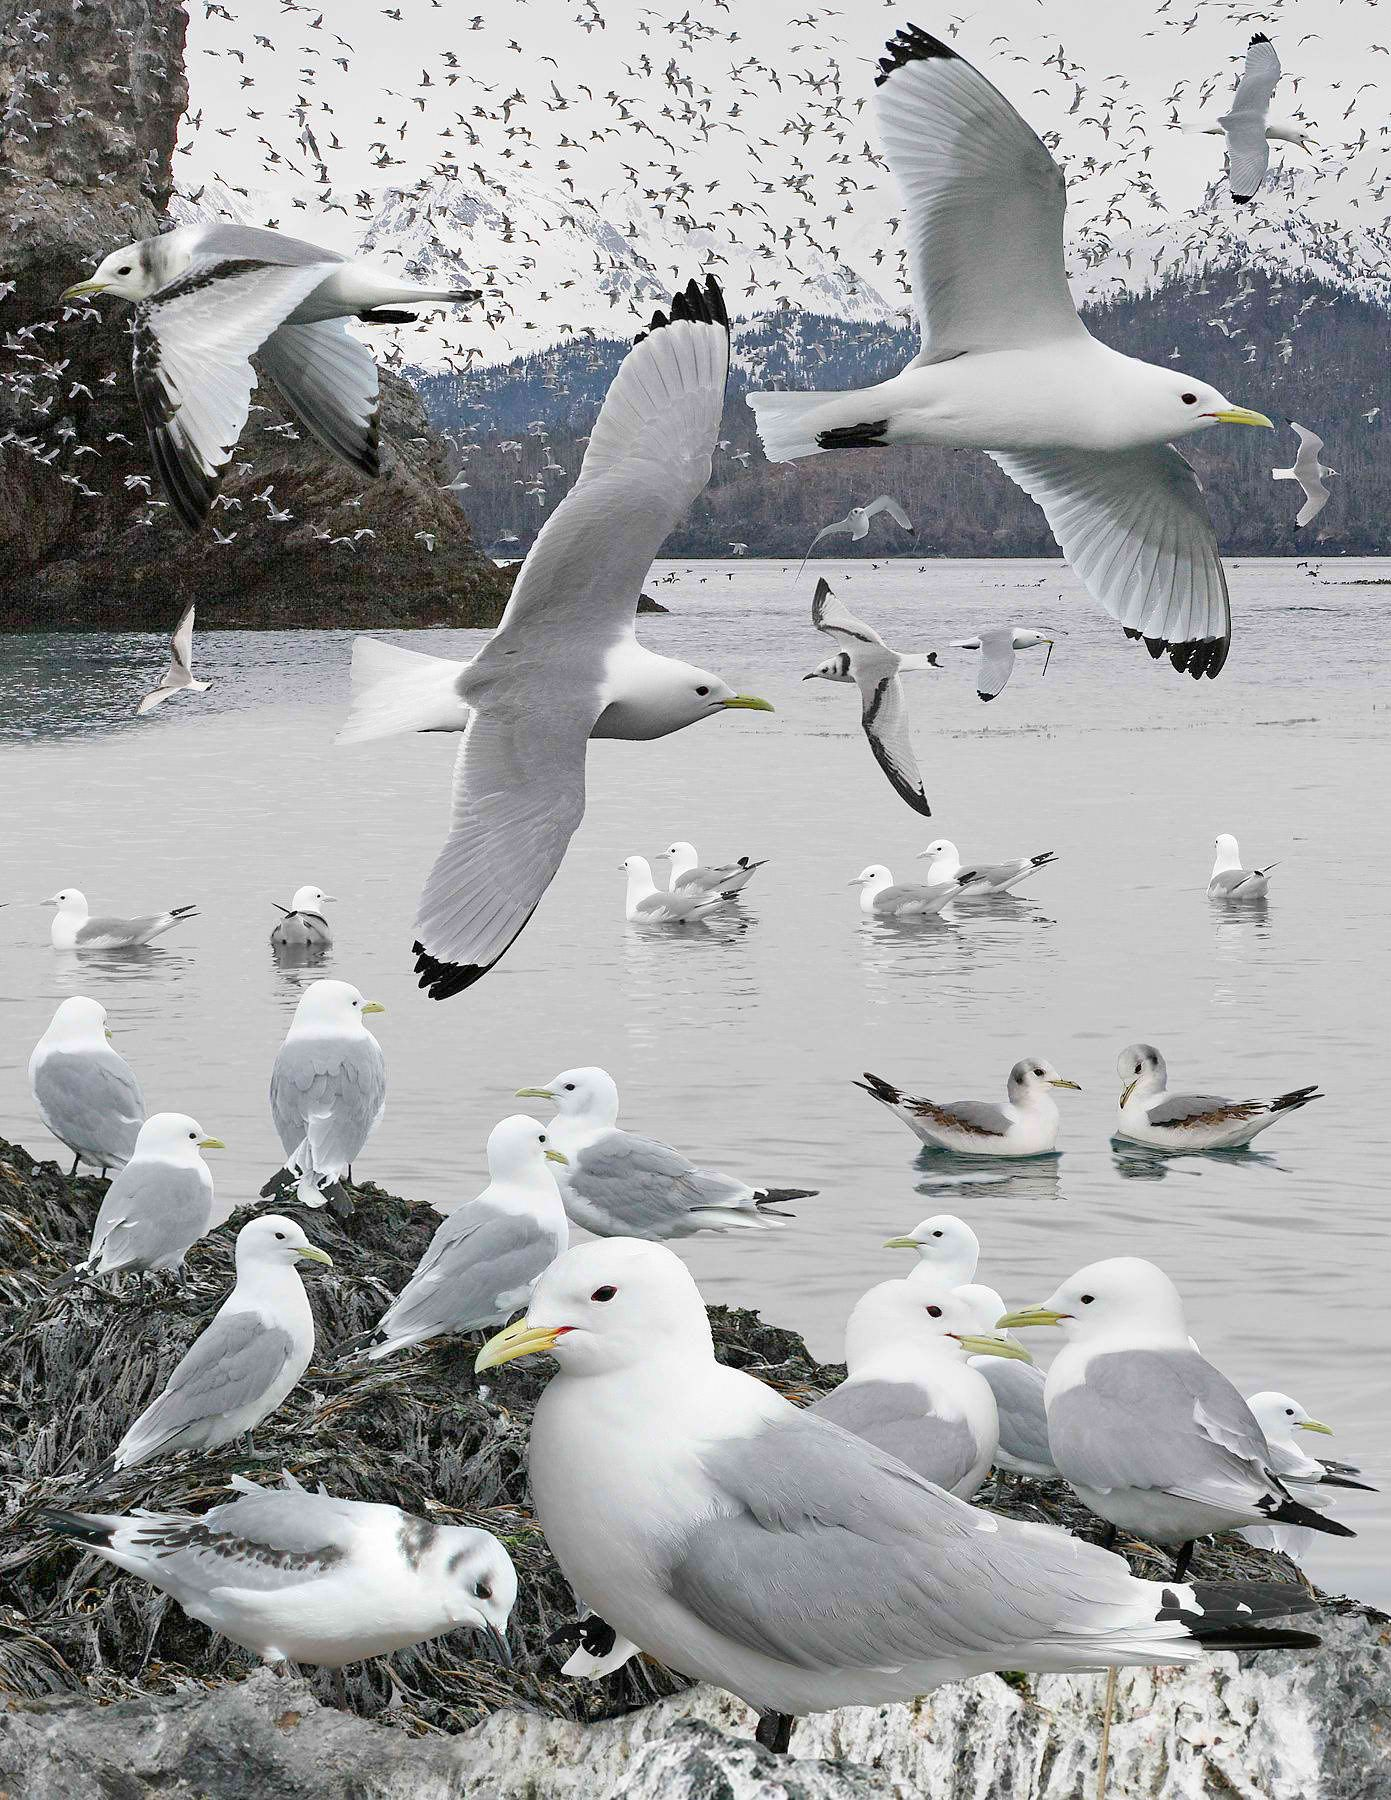 Kittiwakes can drink sea water and are excellent fishermen